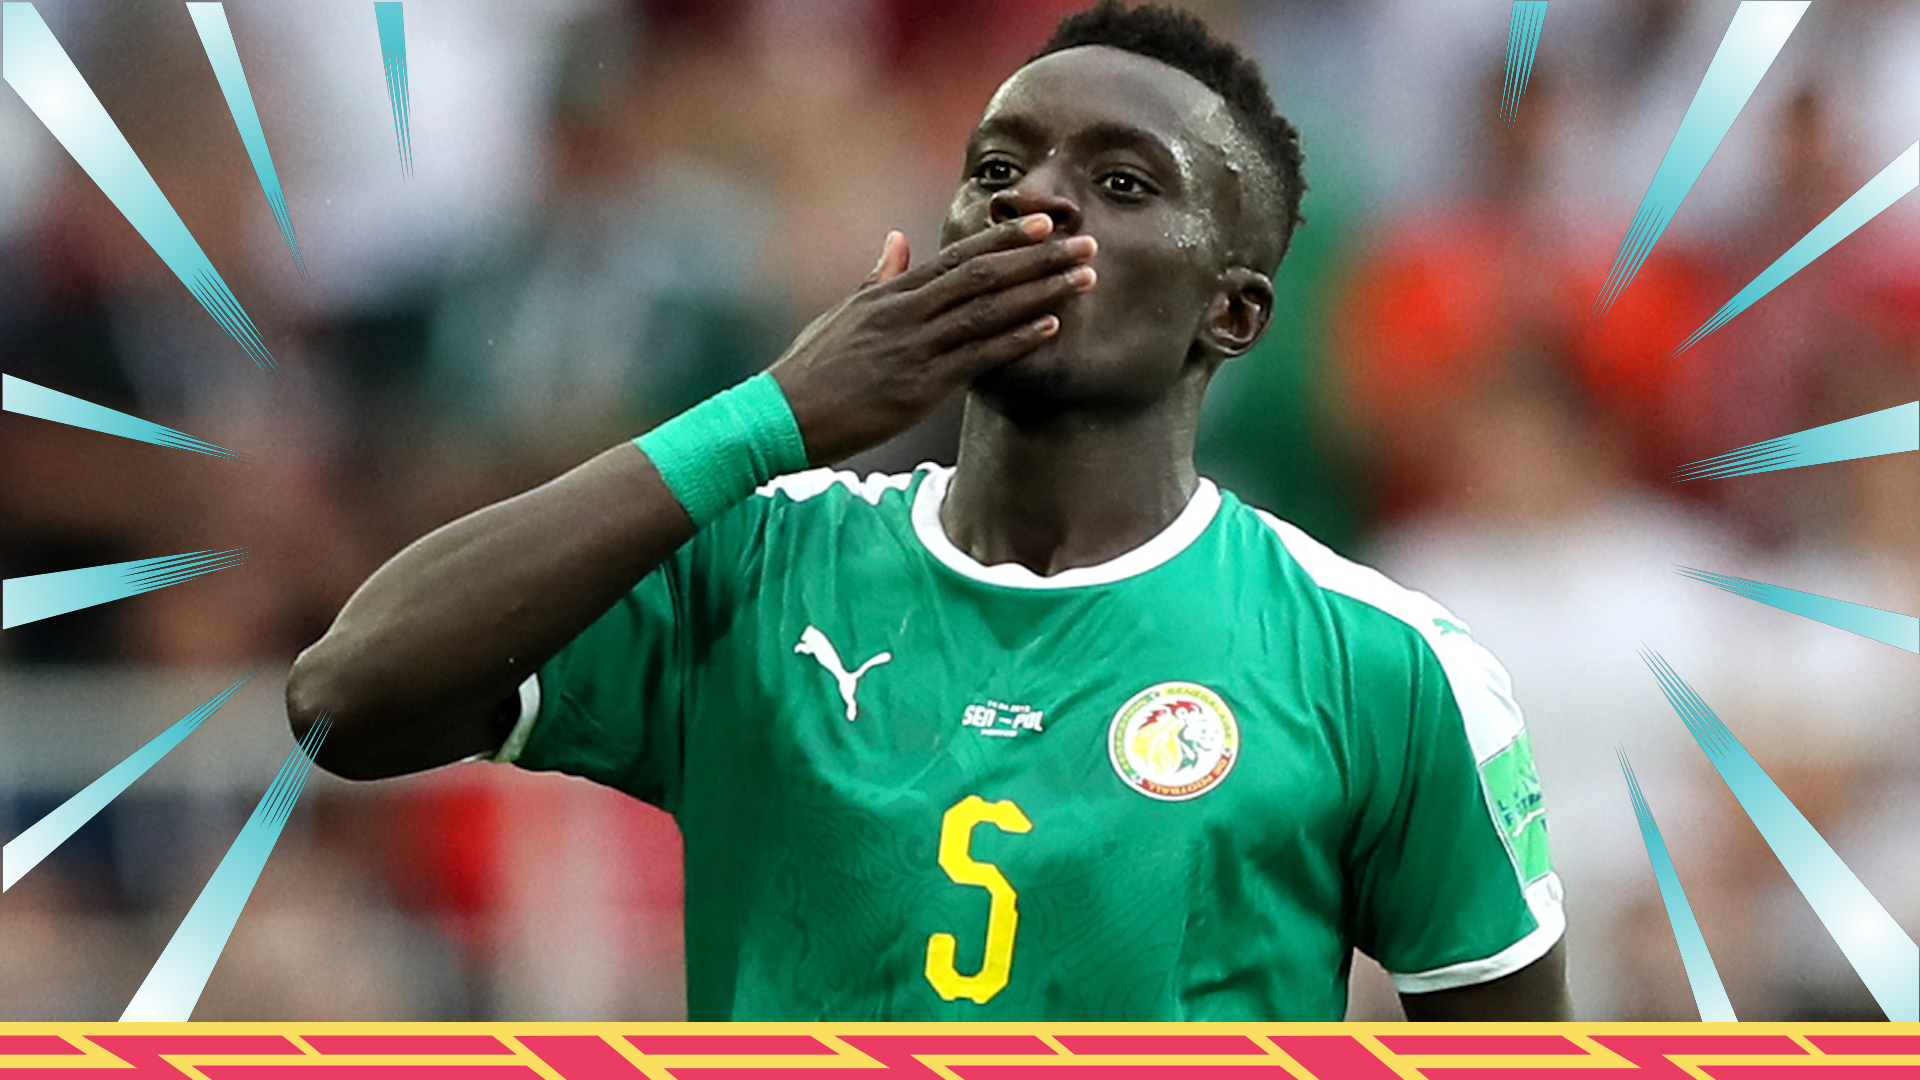 World Cup 2018: Poland 1-2 Senegal highlights